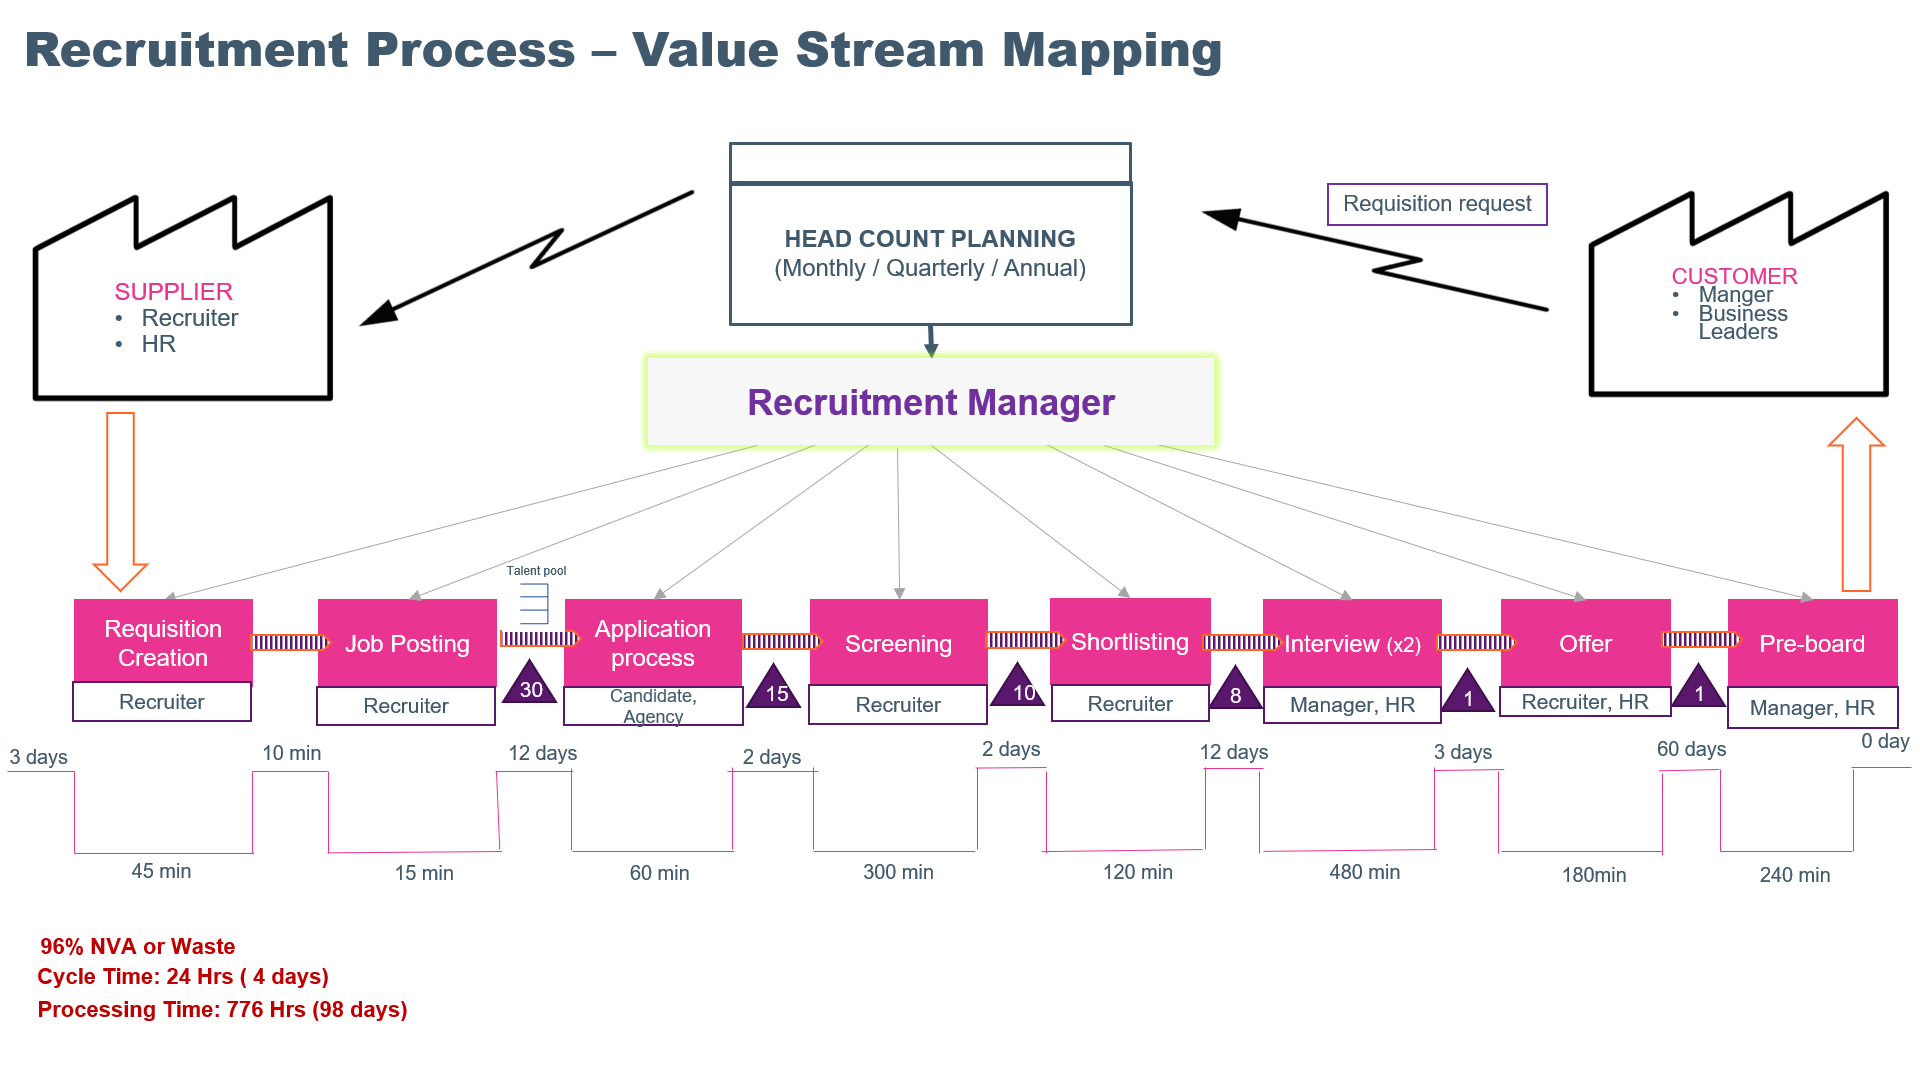 Recruitment process value stream mapping